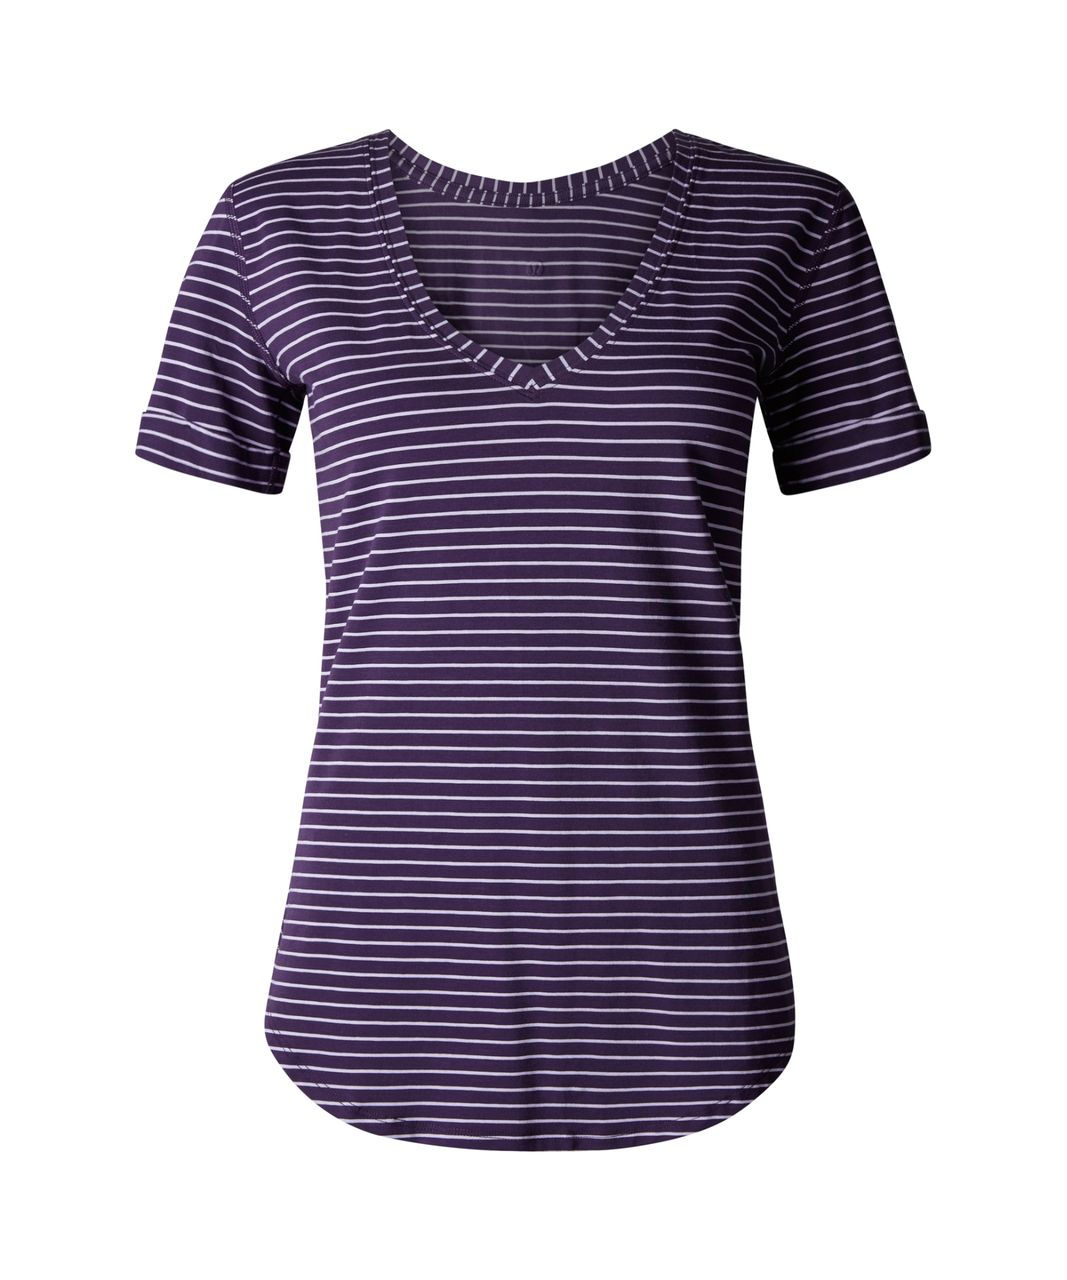 Lululemon Love Tee II - Parallel Stripe Lilac Deep Zinfandel